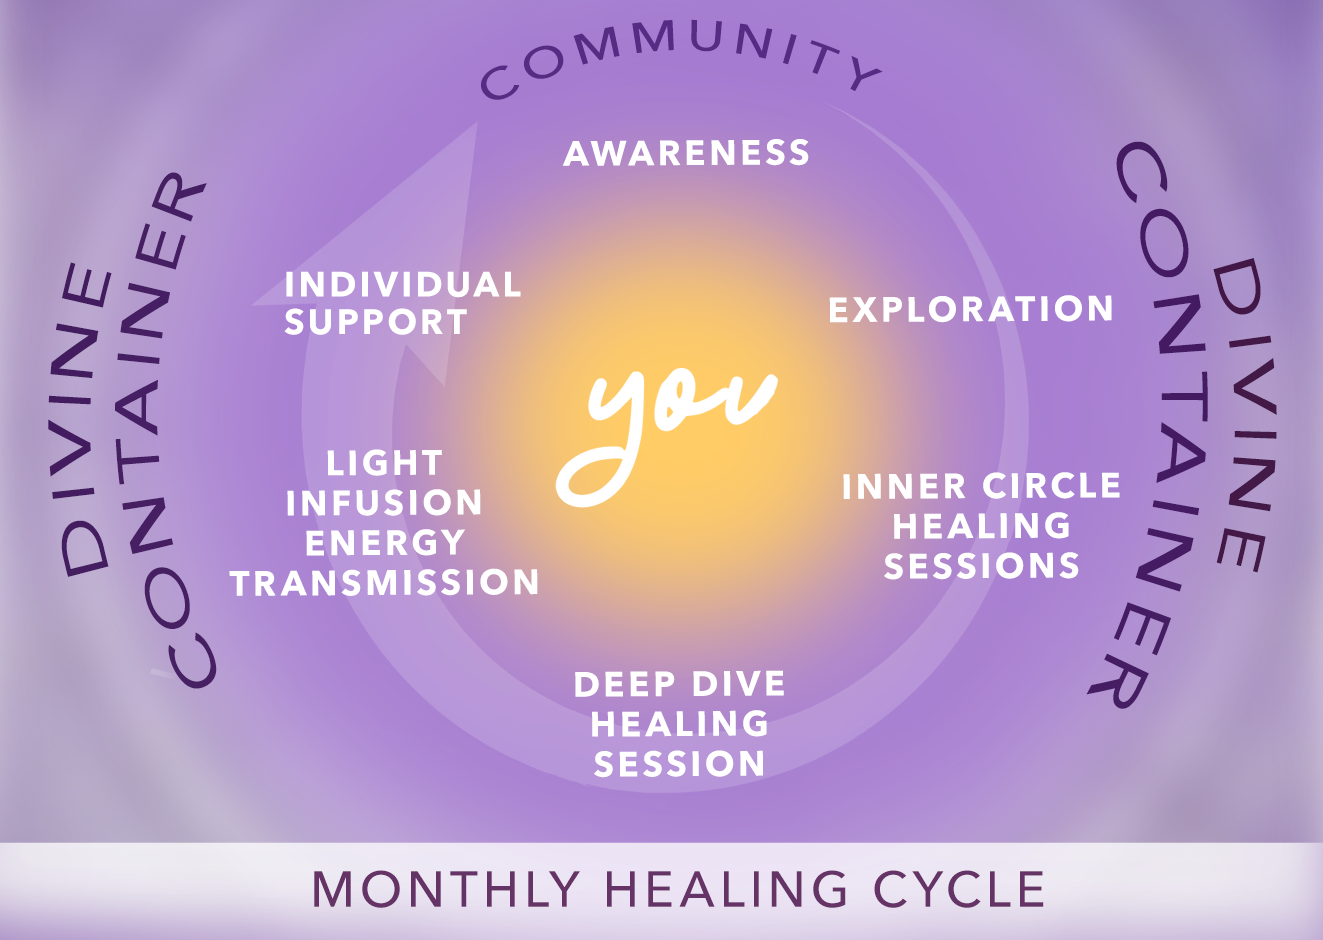 Monthly healing cycle